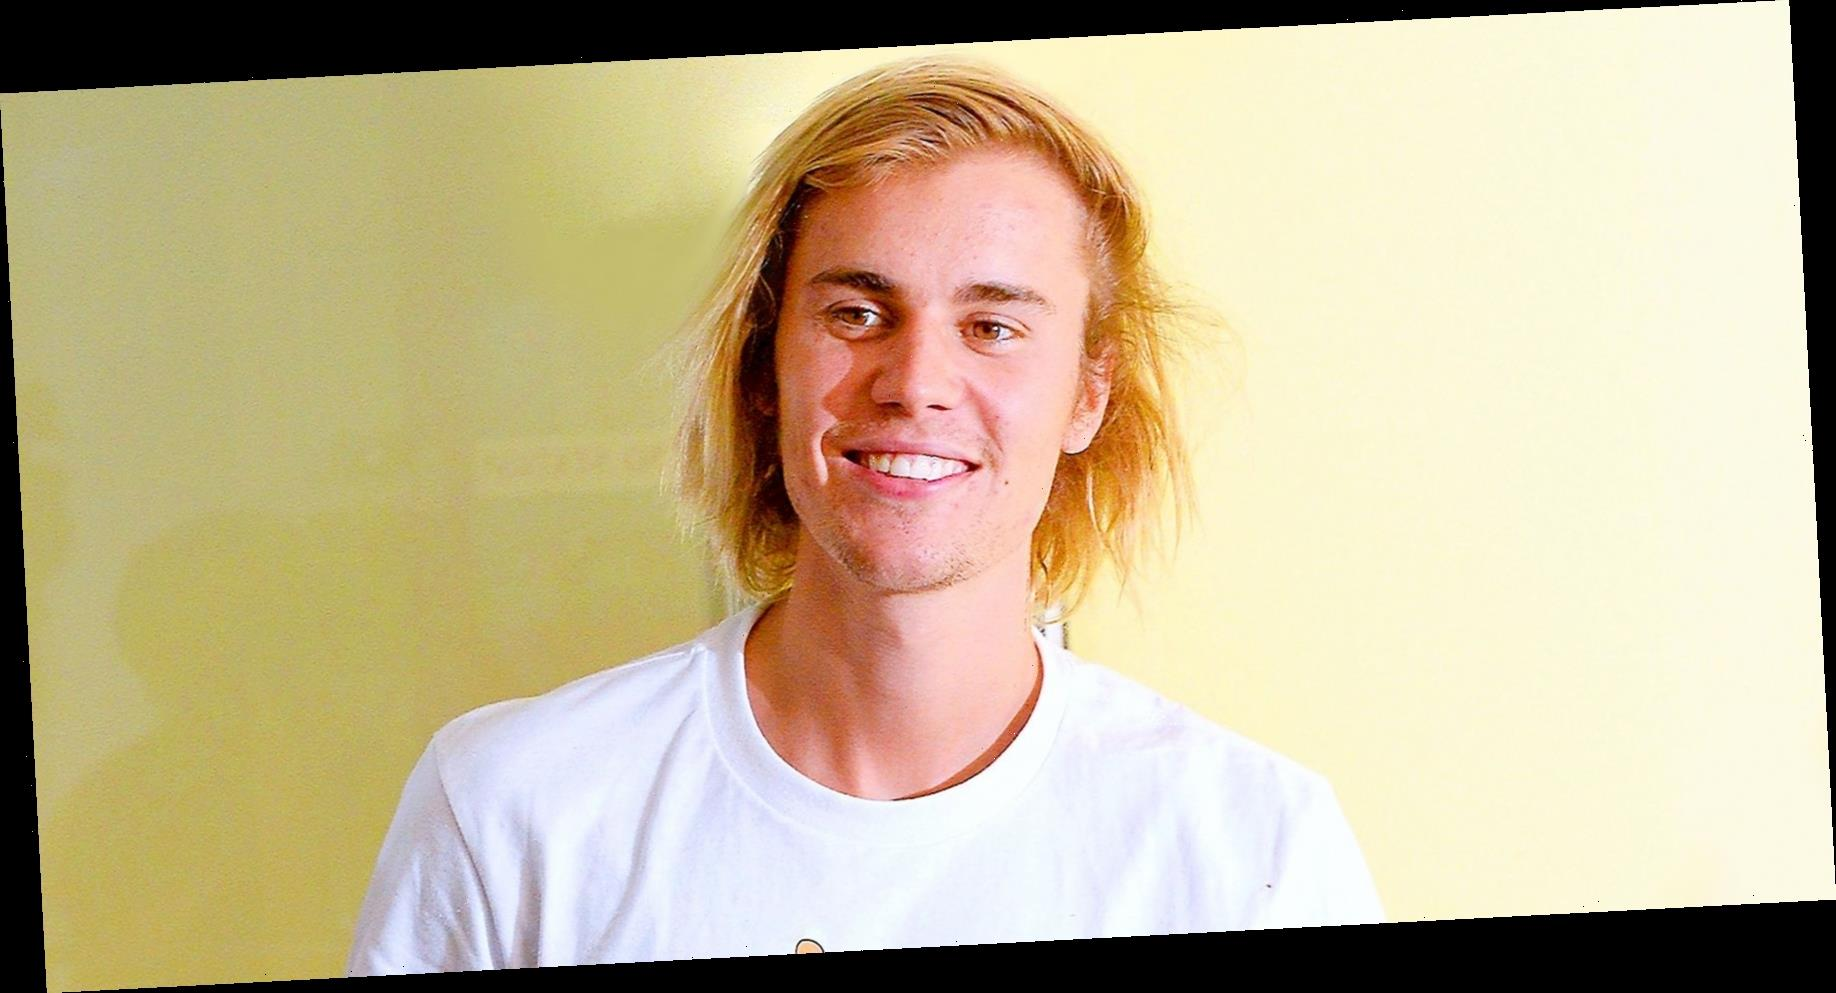 Justin Bieber Really, Really Wants to Go on a Double Date With Miley Cyrus and Cody Simpson